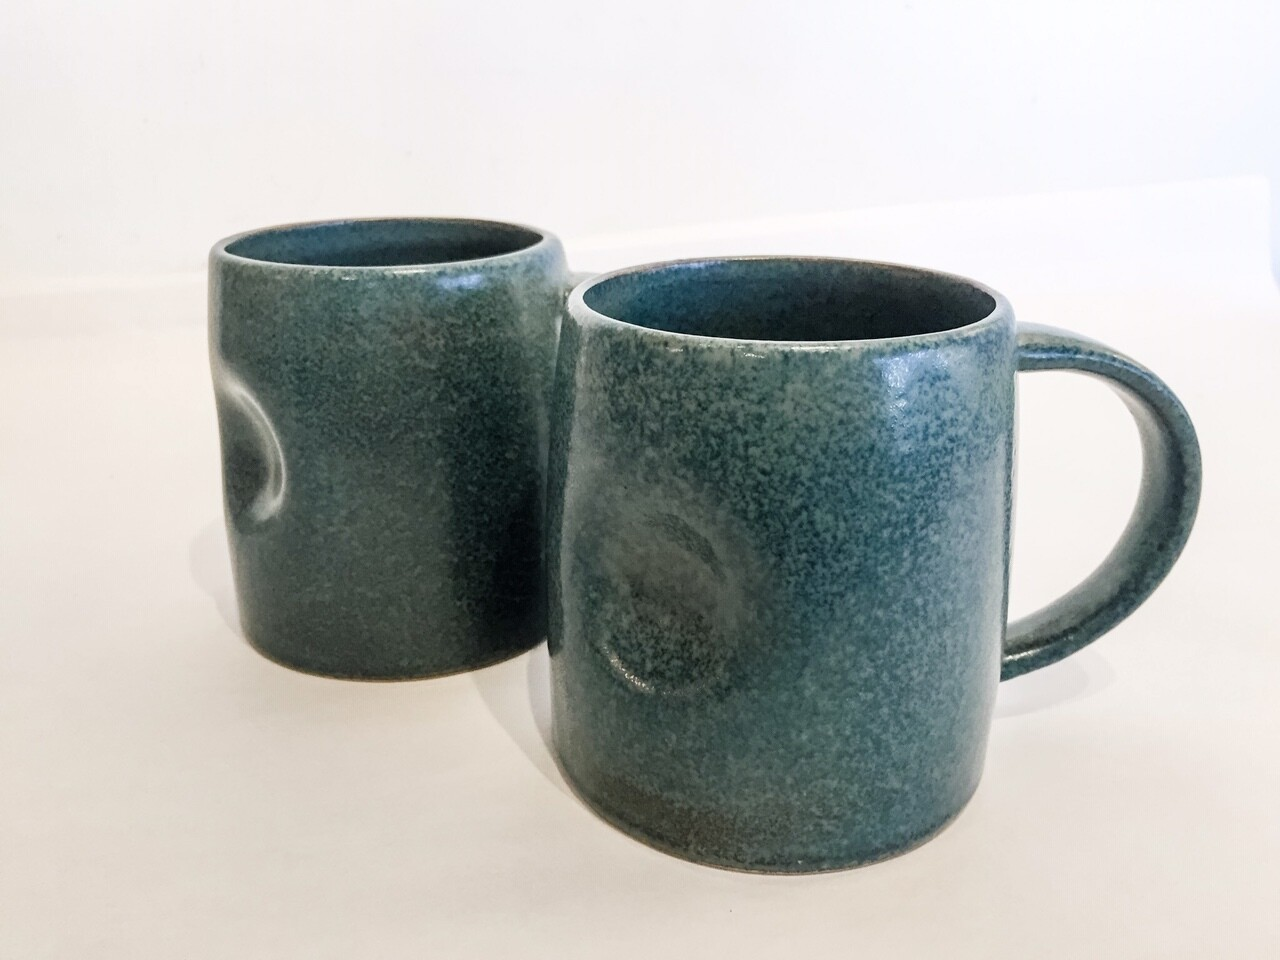 BV142 Stoneware Mug - Matte Reactive Glaze - Grey or Black